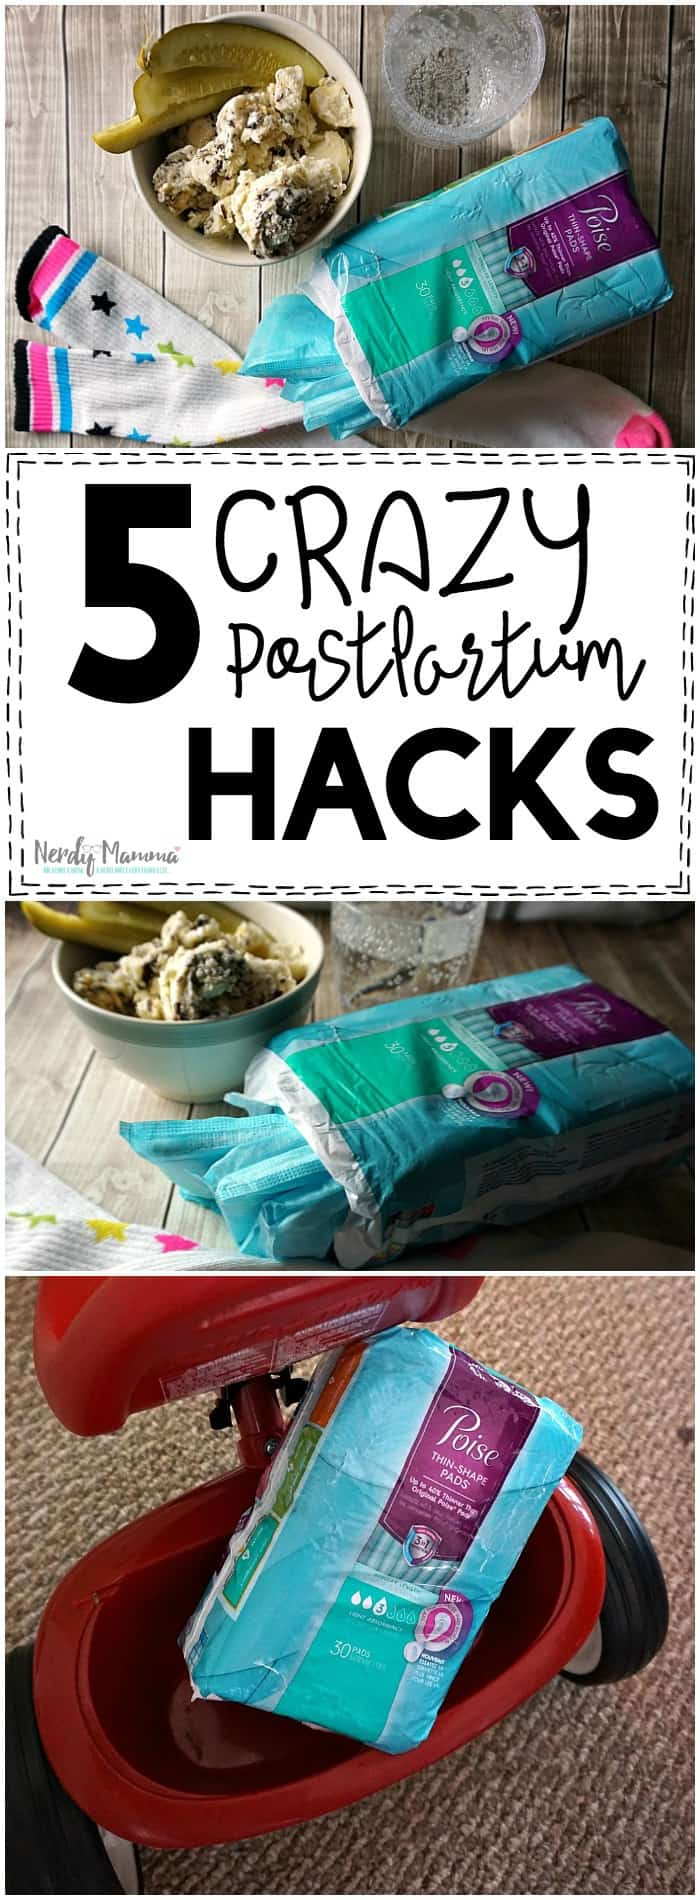 I just love these 5 Crazy Postpartum Hacks. Am about to have my first and I really had NO IDEA...you just don't think of this. LOL!